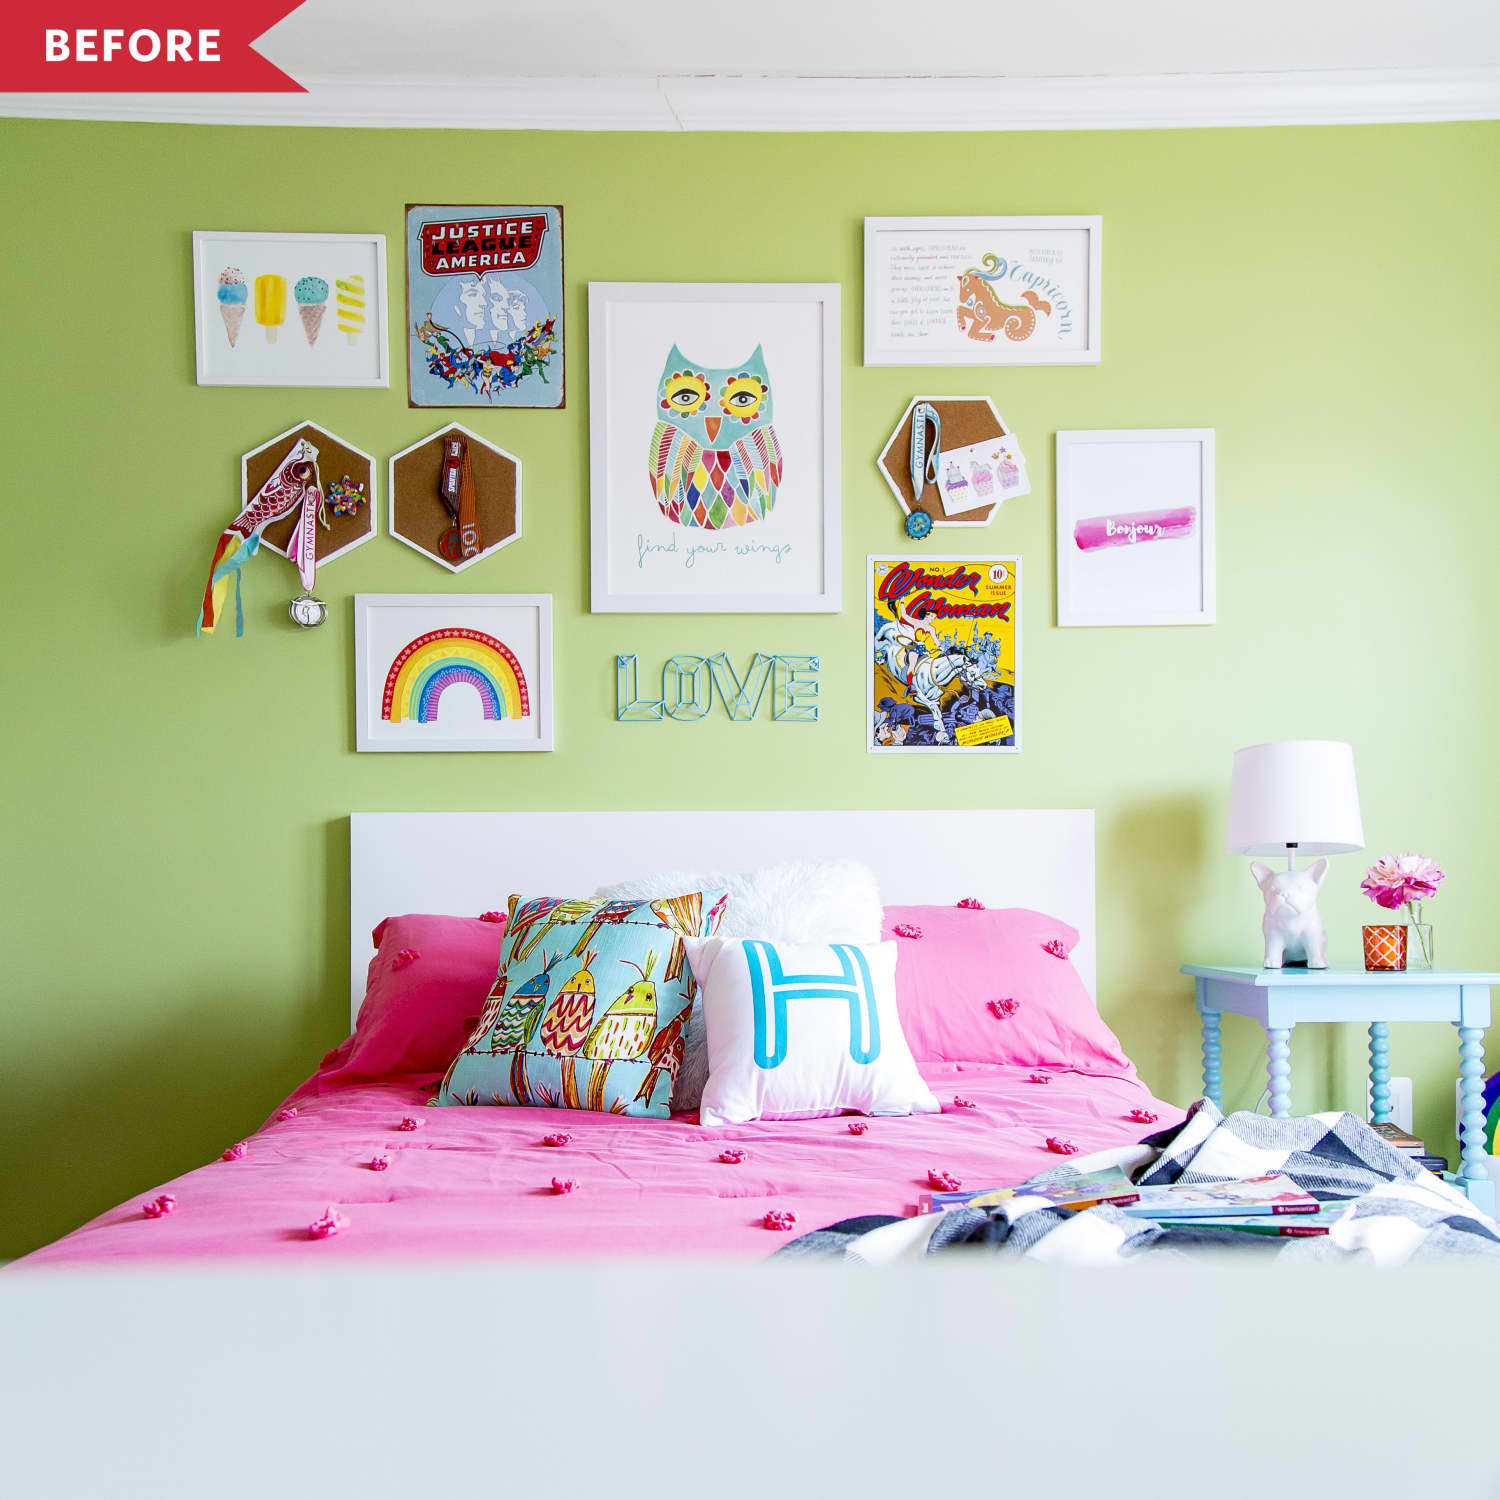 Before and After: A $74 Accent Wall Transforms This Once-Green Bedroom